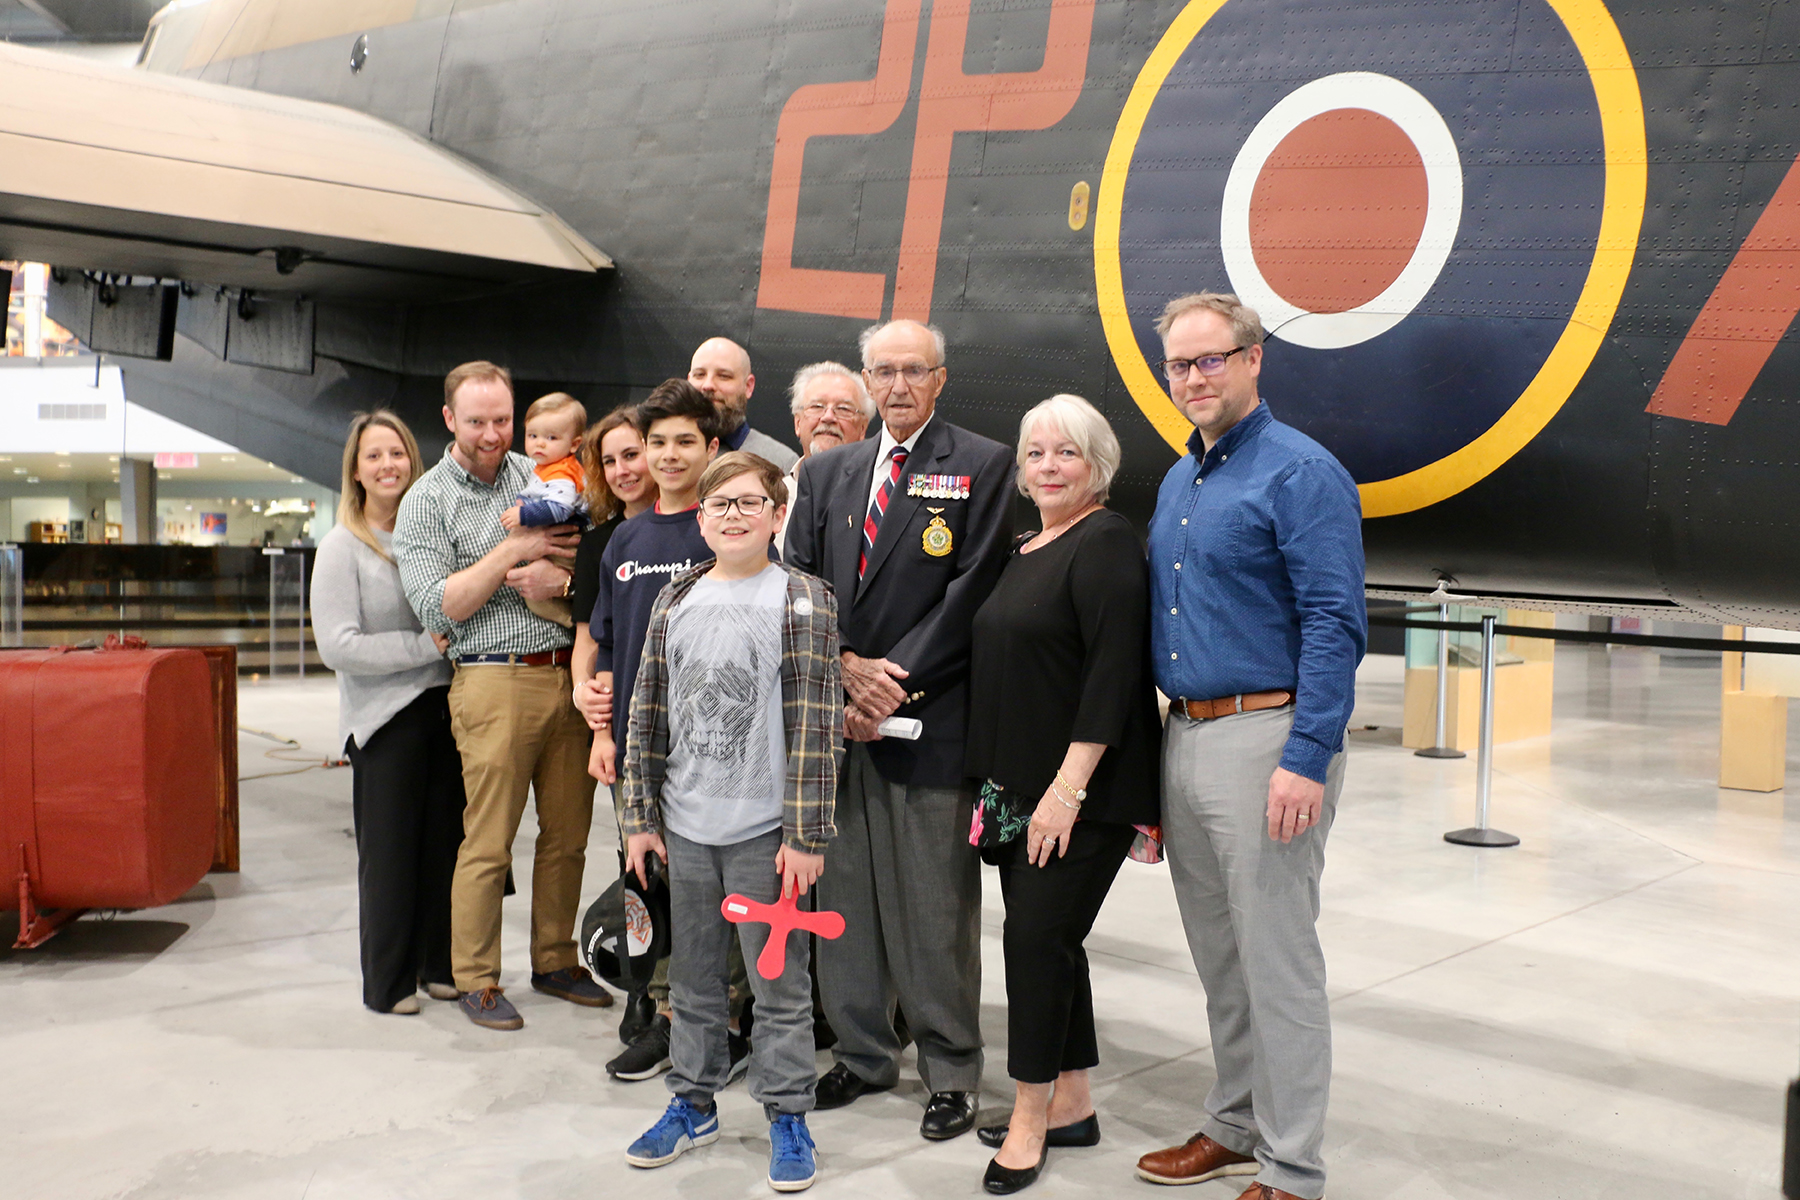 Flight Lieutenant (retired) Stuart Vallières (third right) stands with members of his family beside the Halifax bomber at the National Air Force Museum of Canada in Trenton, Ontario, on May 15, 2019. PHOTO: Makala Chapman